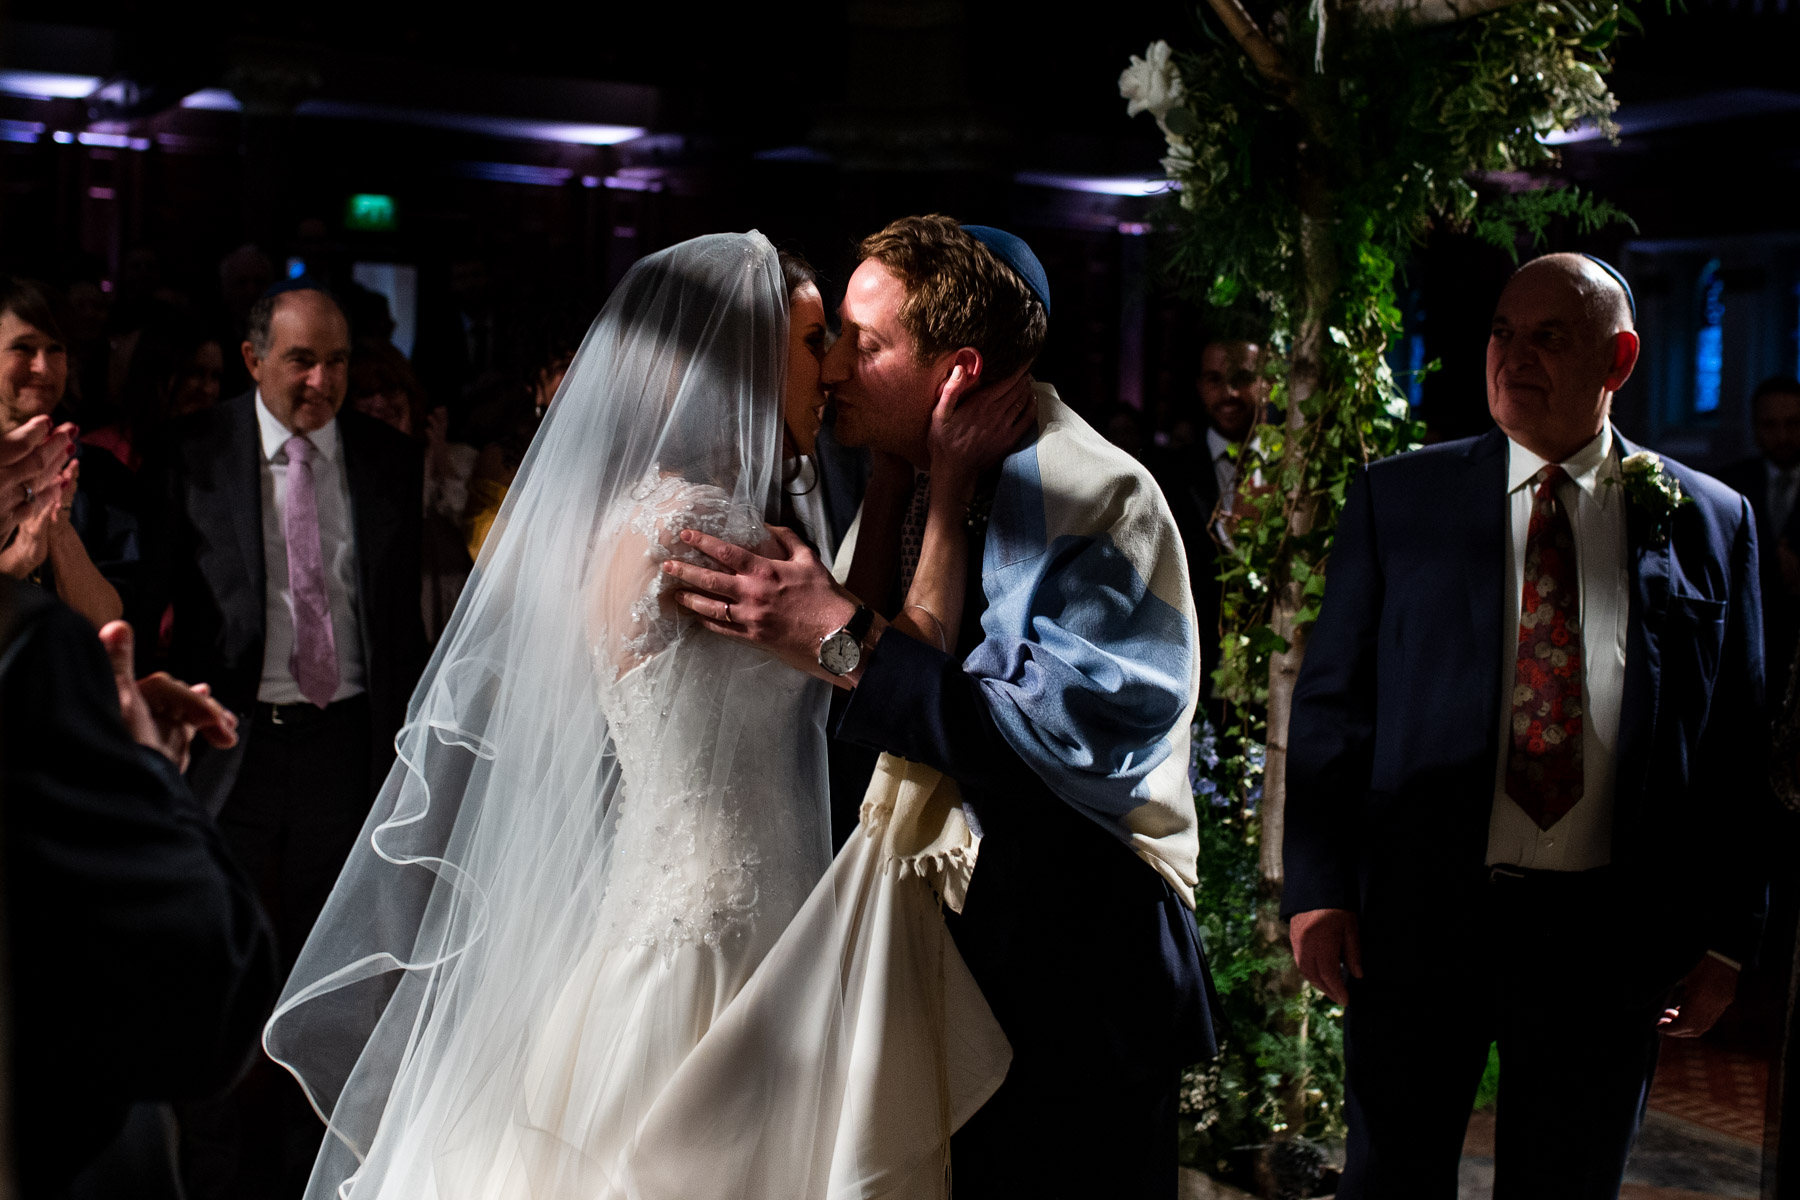 Romantic photo of bride and groom first kiss